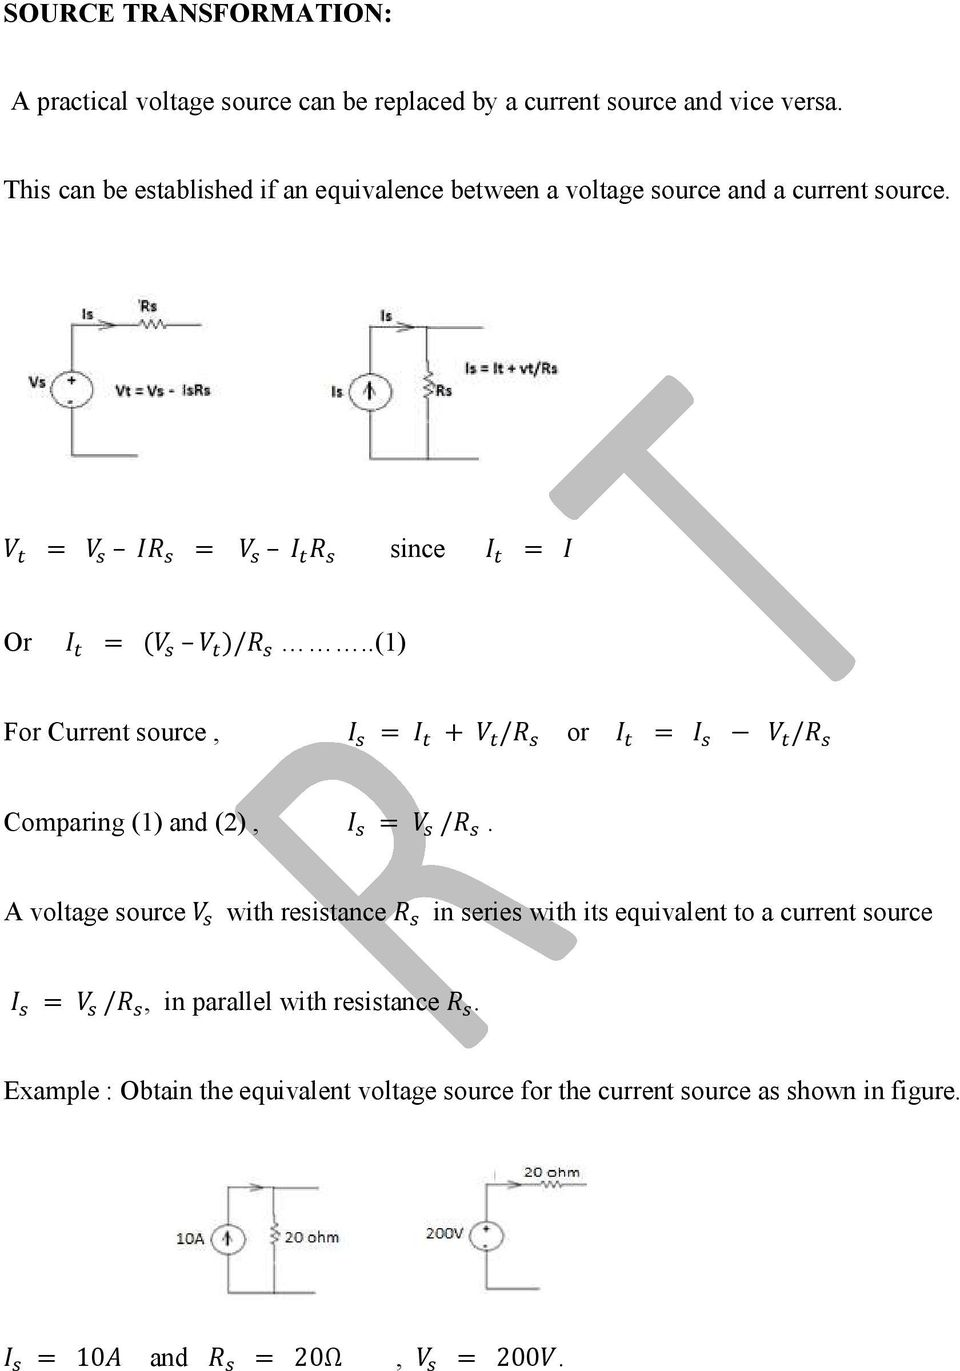 Basic Electrical Engineering Pdf Electronic Circuit Analysis Jntu Notes 1 For Current Source Or Comparing